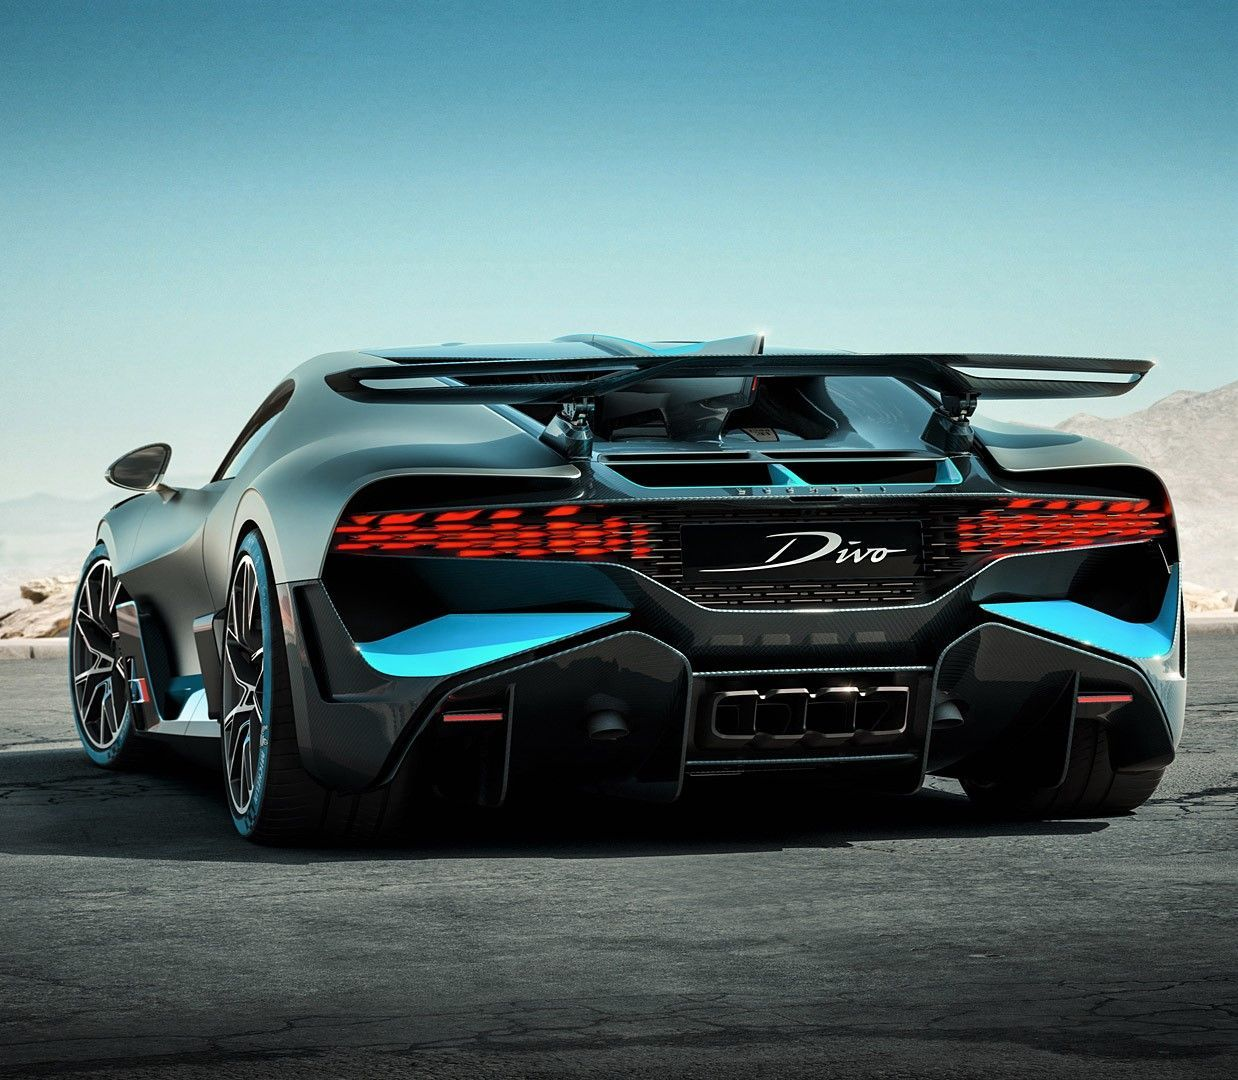 2019 Bugatti Divo The Man The Newest And Fastest Sports Car Luxury Sports Cars Are High Speed Cars Like The Following Bugatti Cars Sports Car Sports Cars